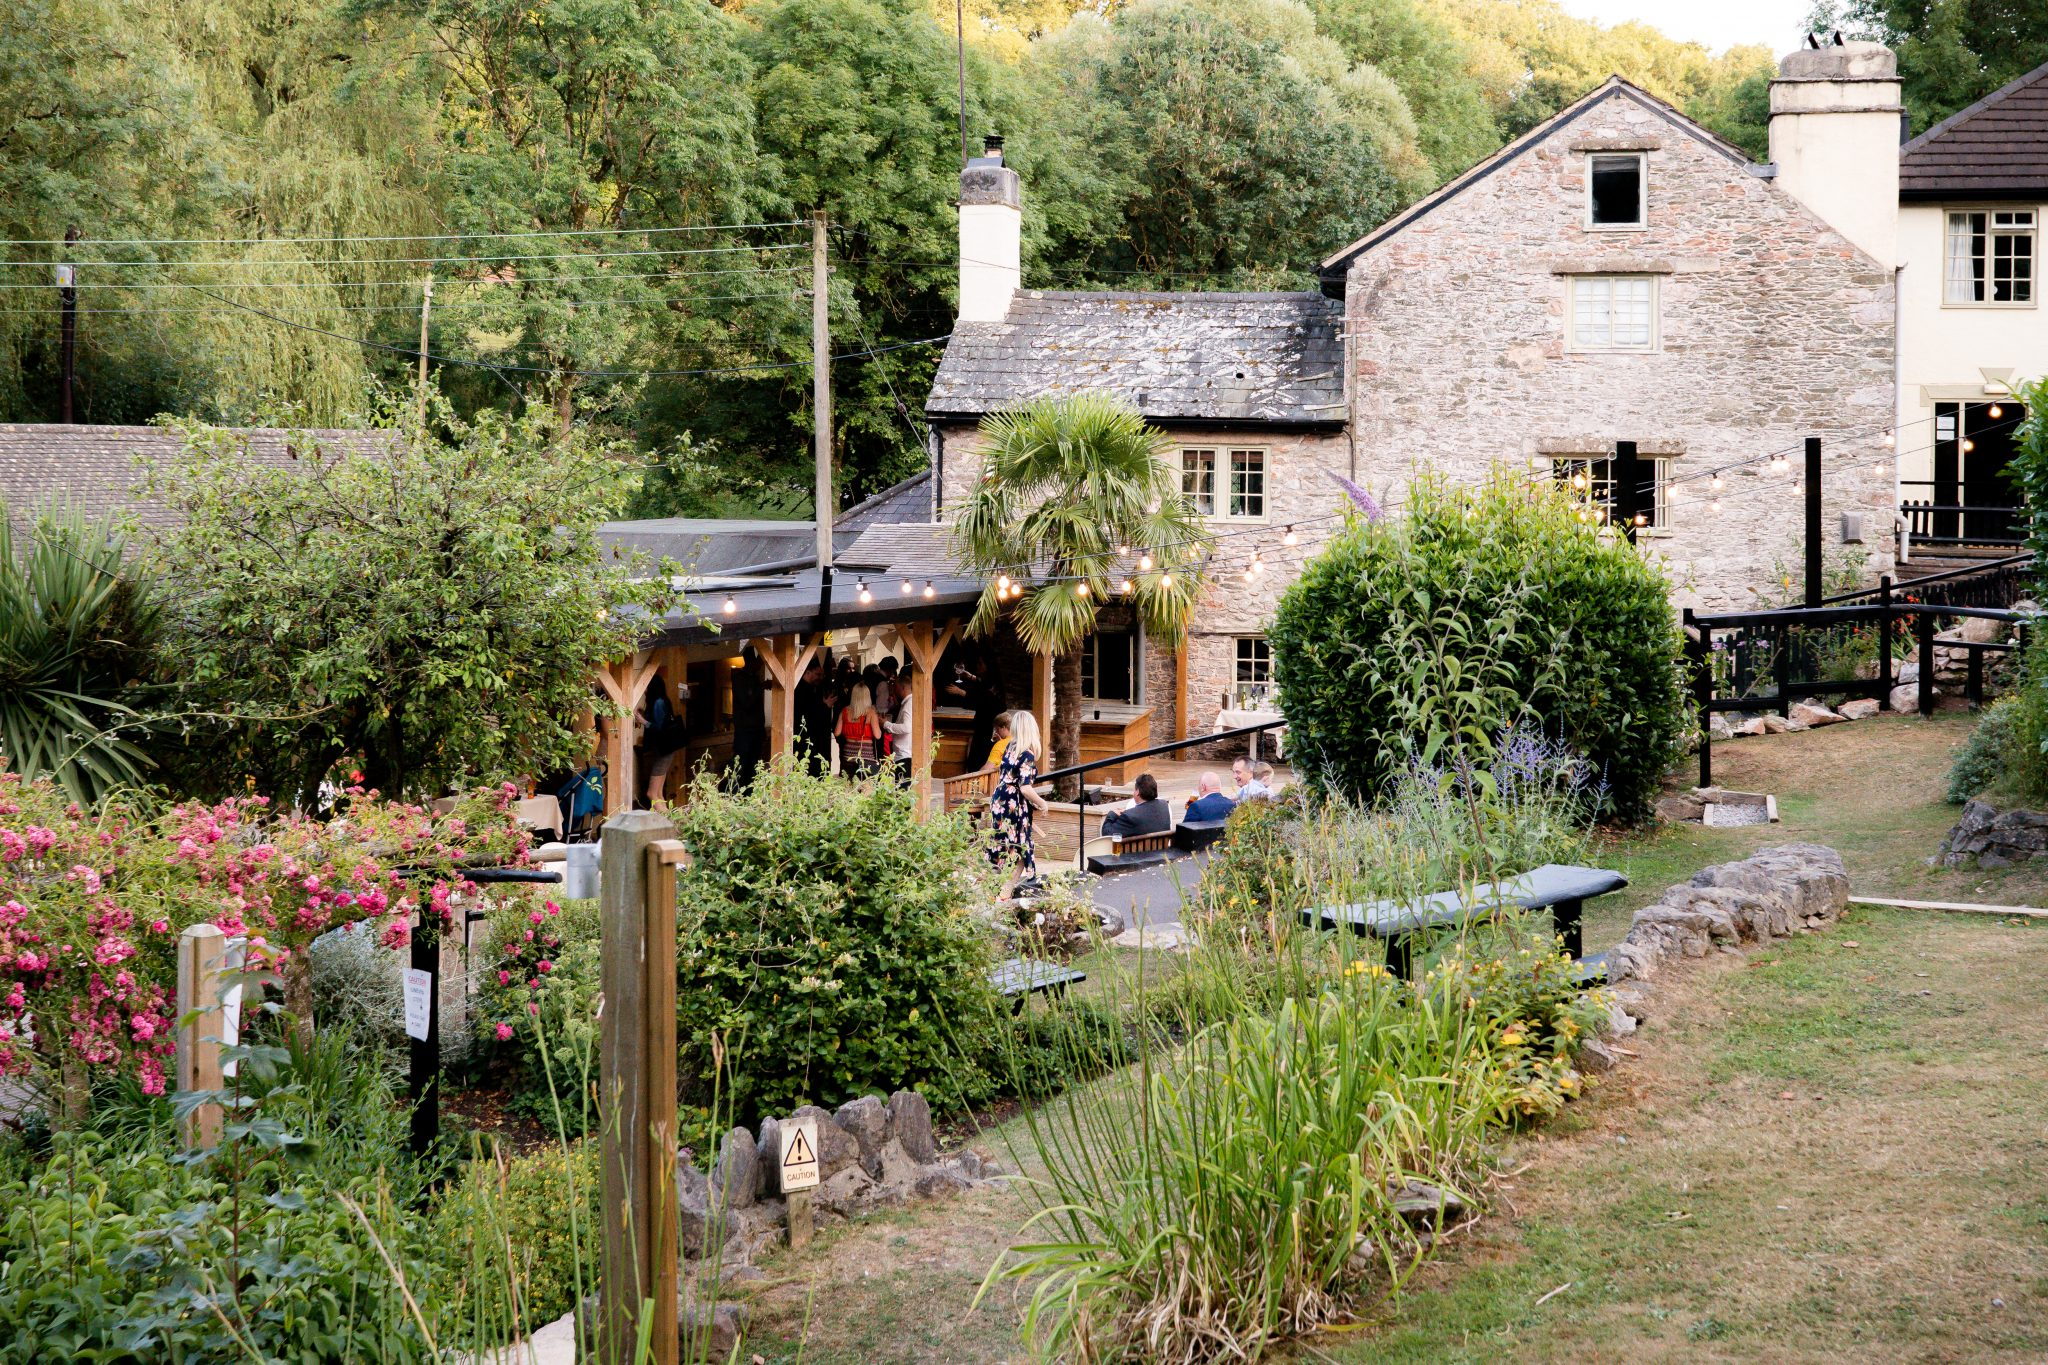 Bickley Mill Inn, Bickley Mill wedding venue